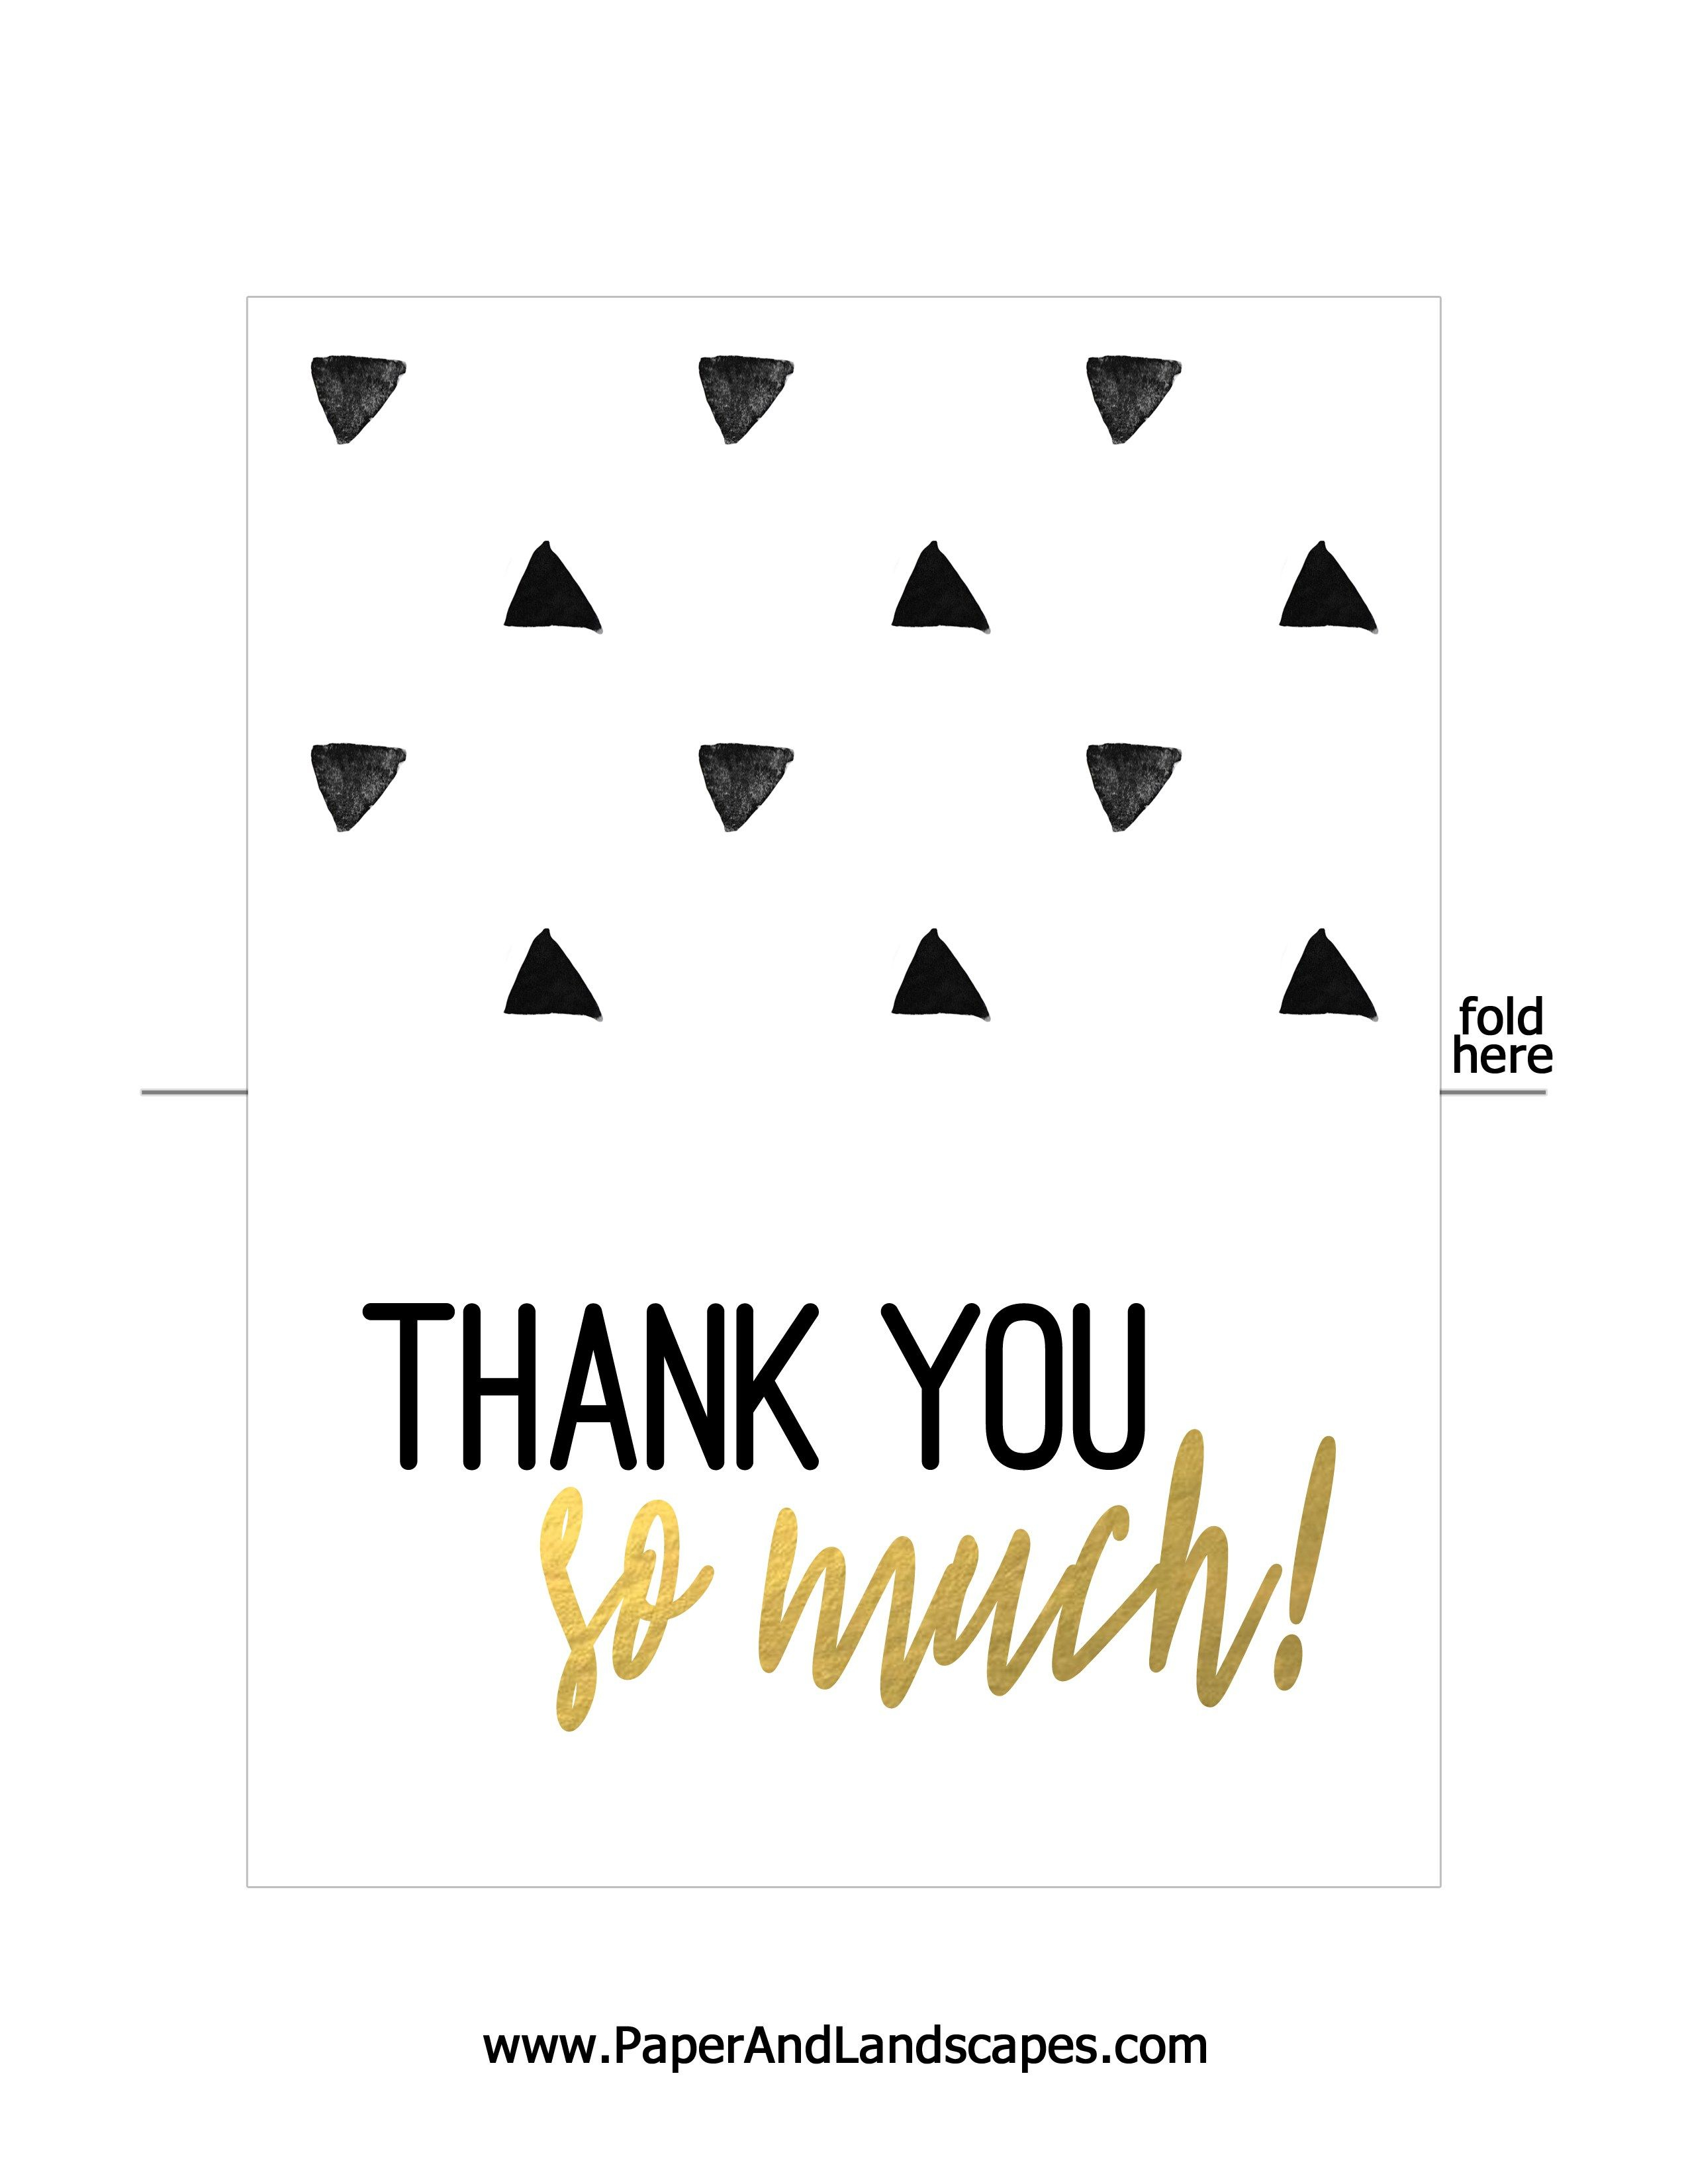 Free Printable Thank You Cards | Messenges - Free Printable Thank You